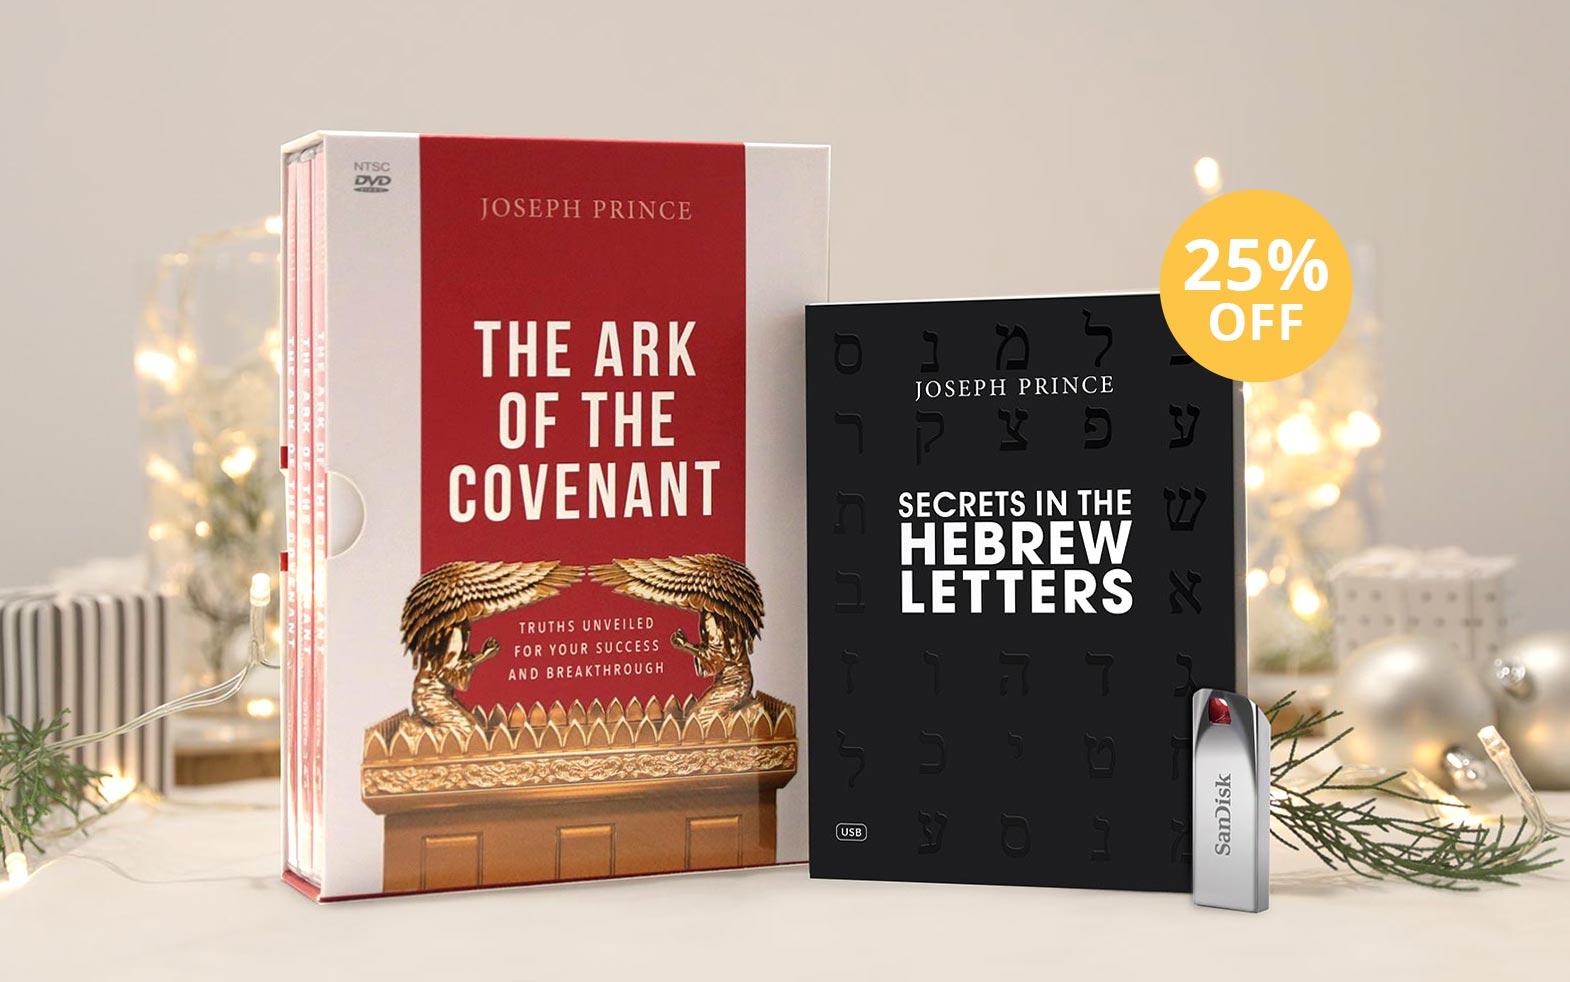 Joseph Prince Latest Series: The Ark of the Covenant —Truths